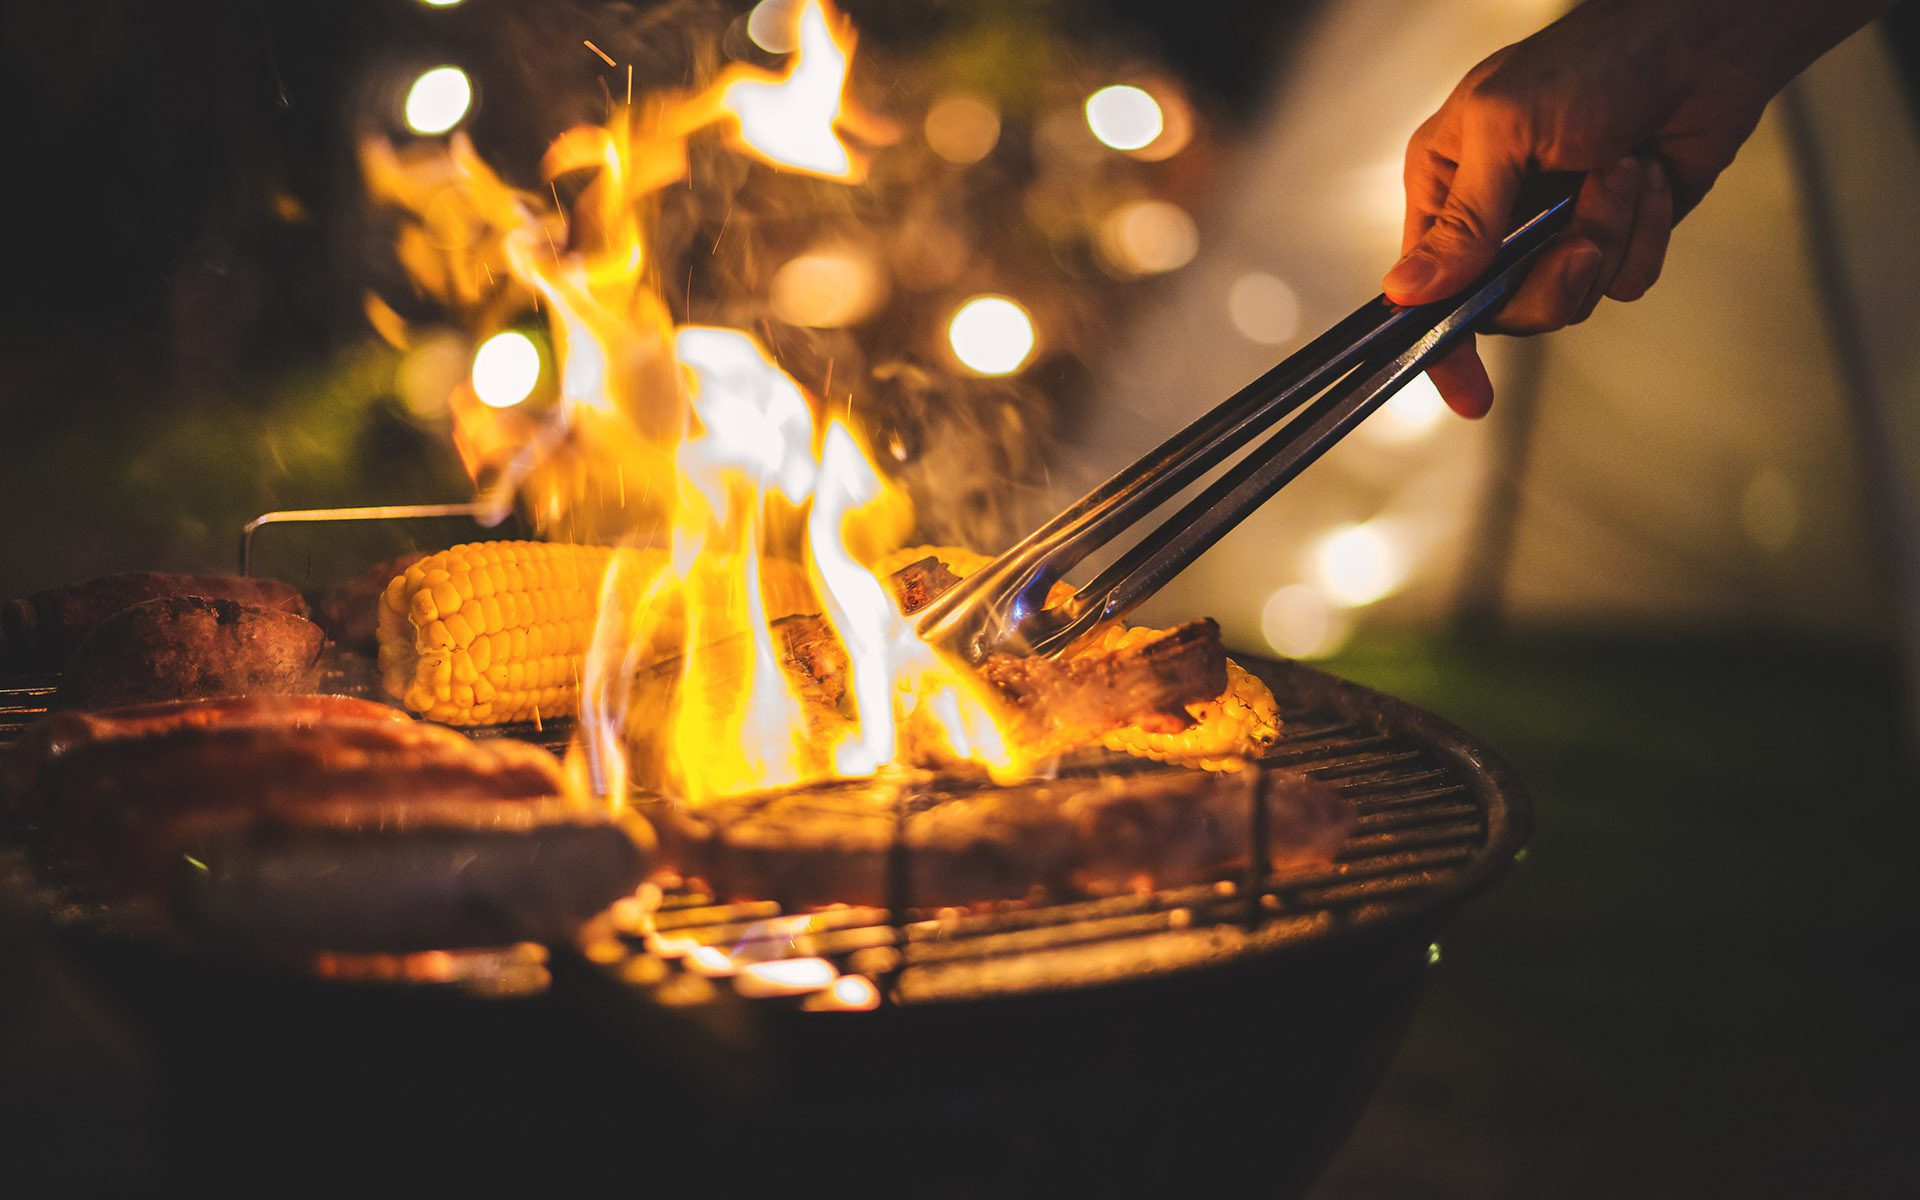 Great Grill Giveaway - Fire Flamed Food On A Grill At A Picnic